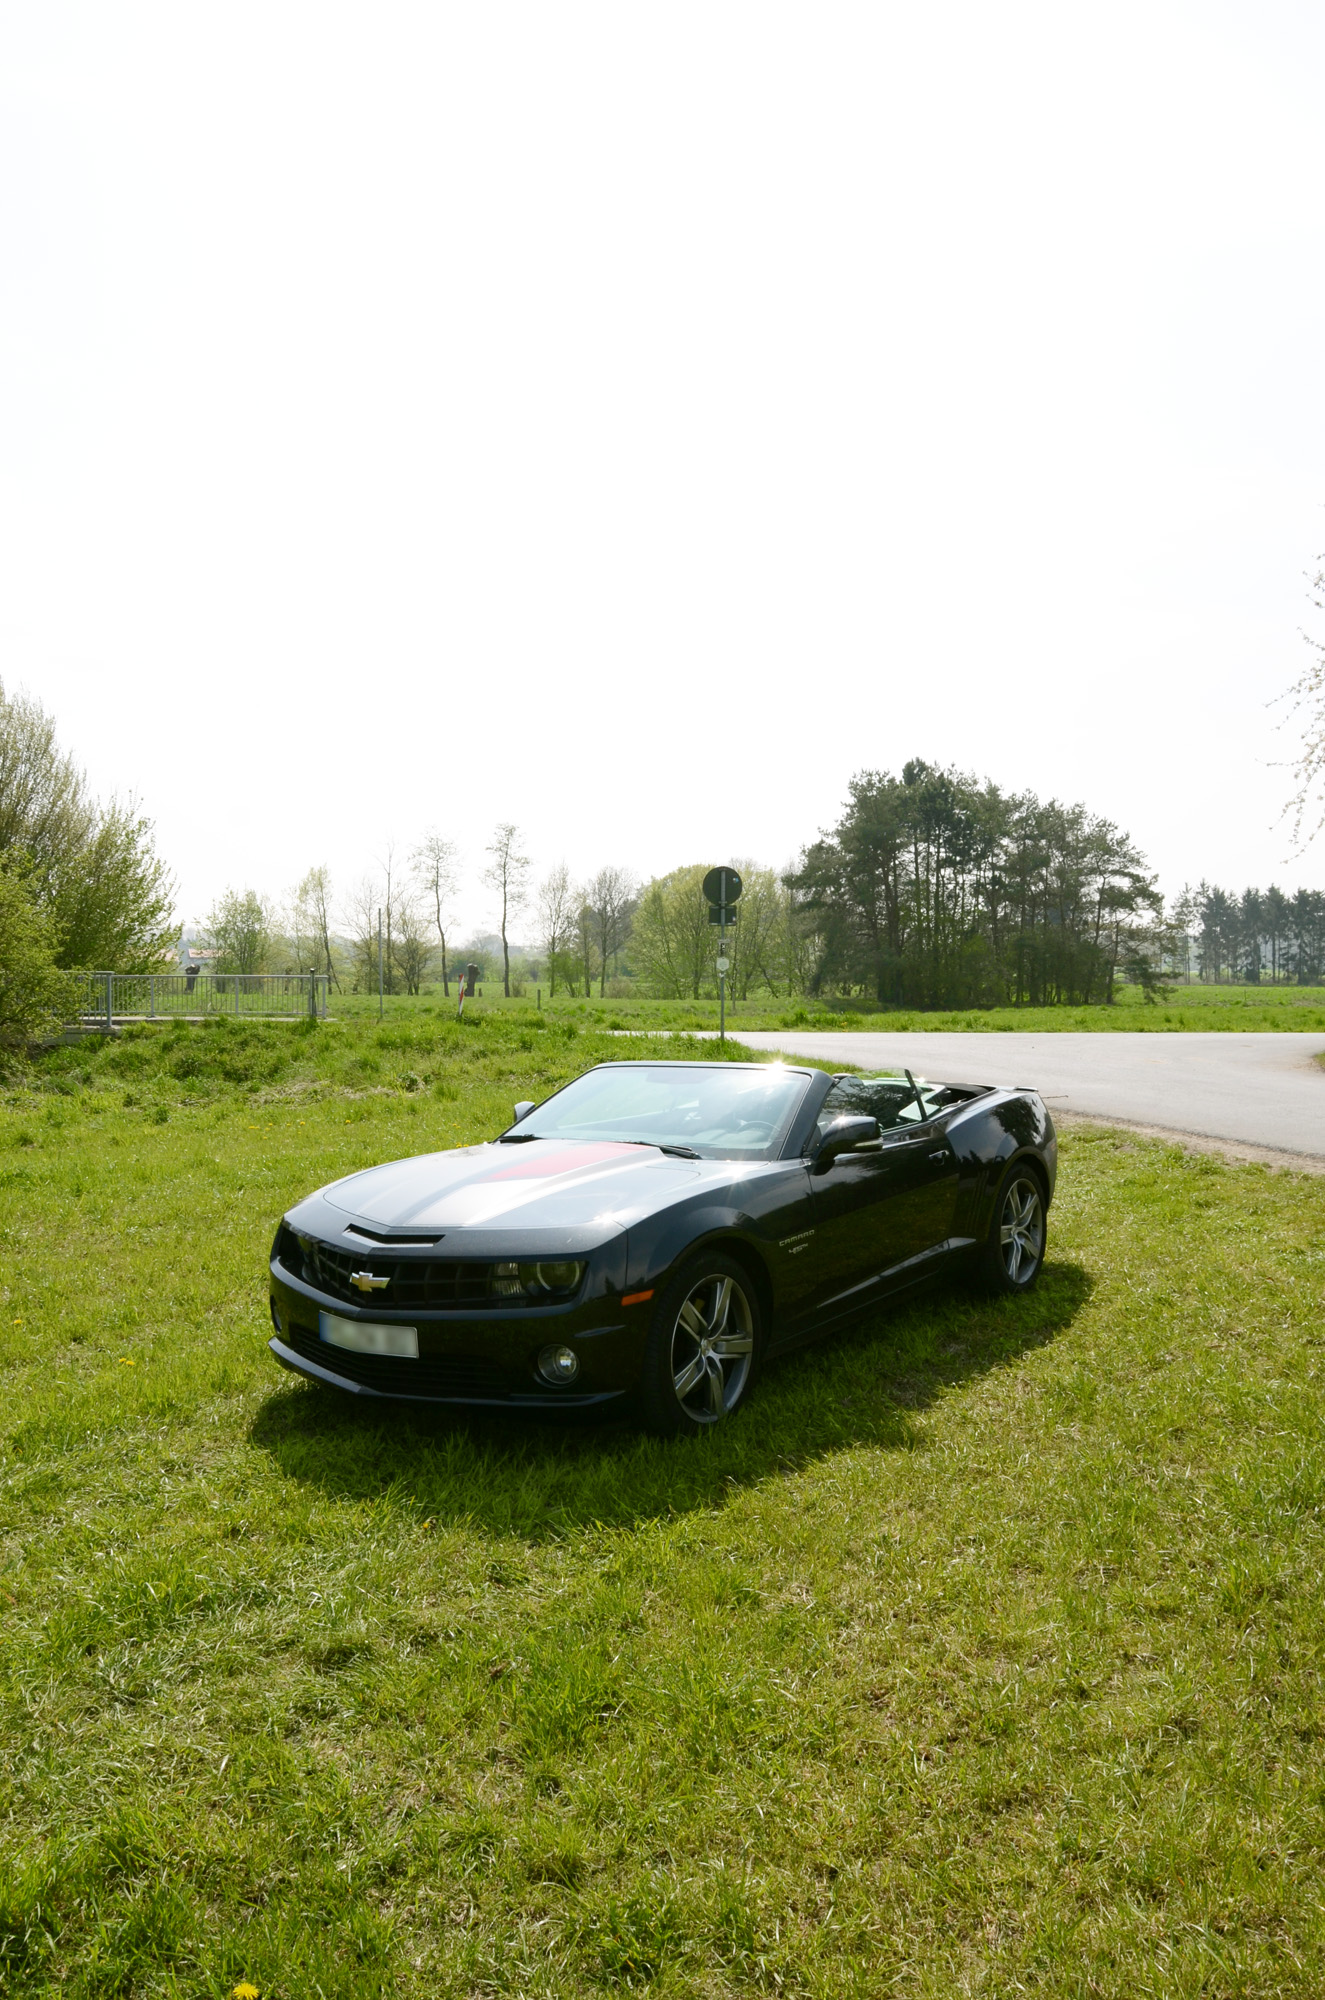 chevrolet-camaro-45th-anniversary-edition-01